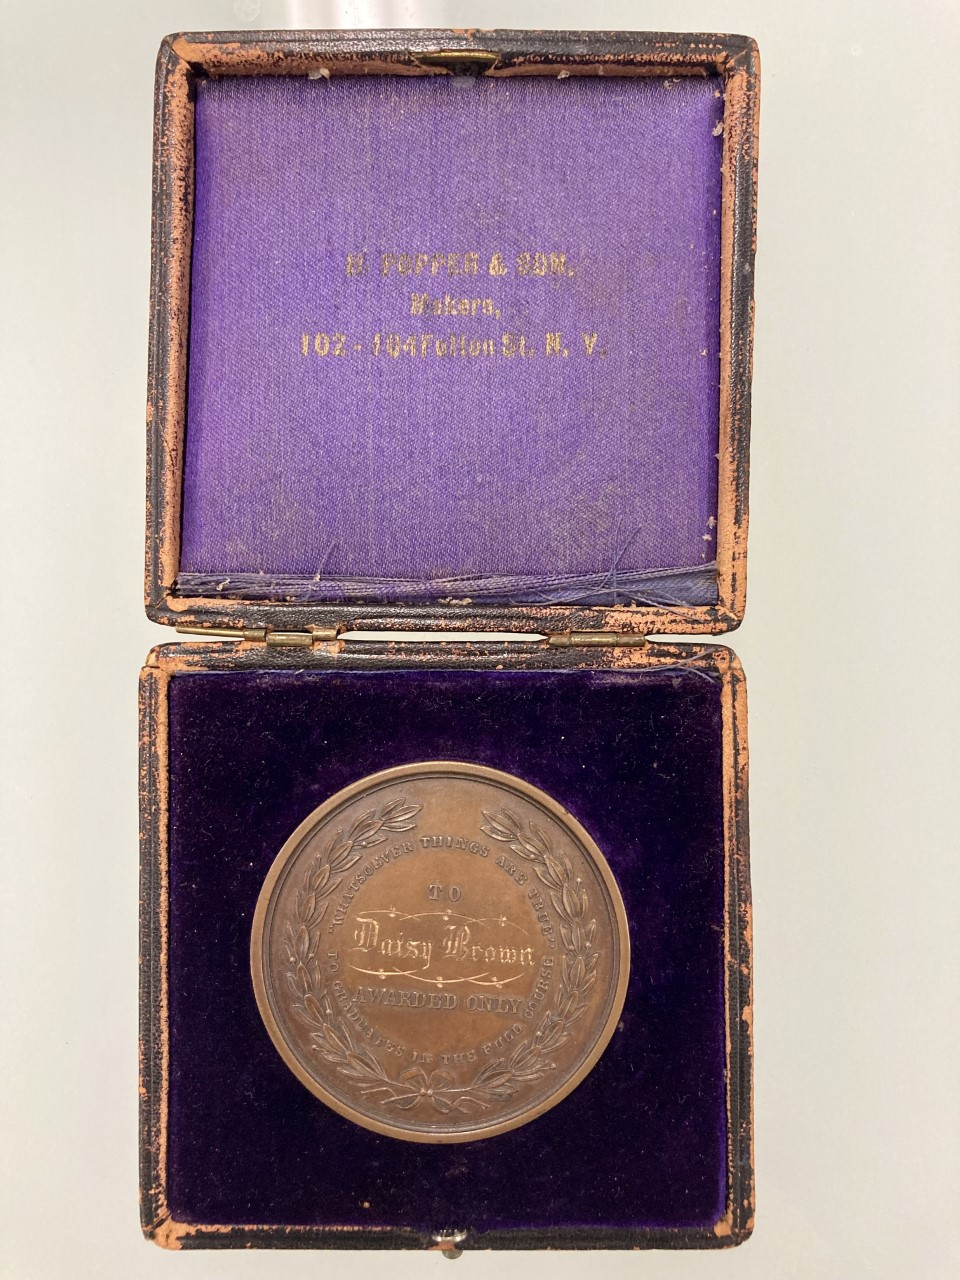 1904 medal awarded to Daisy Brown